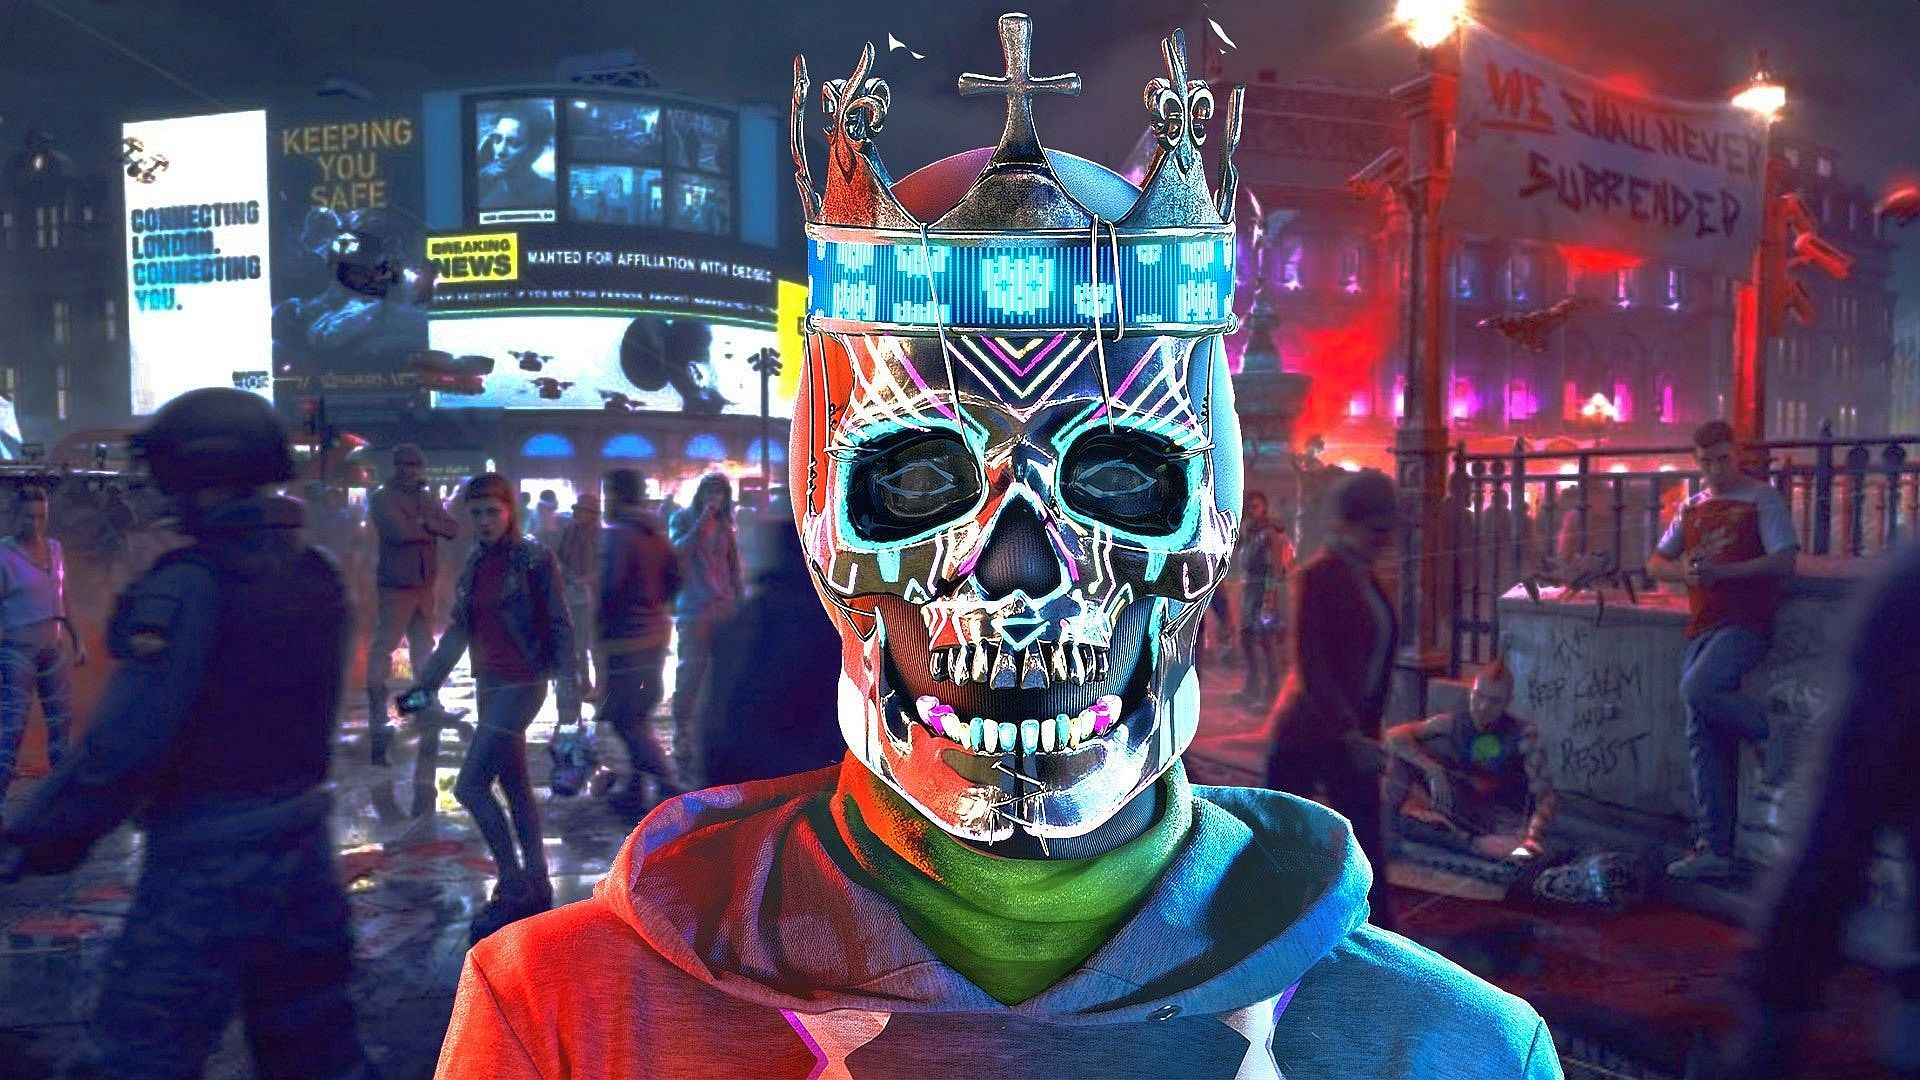 Watch Dogs: Legion turned out to be very demanding on hardware